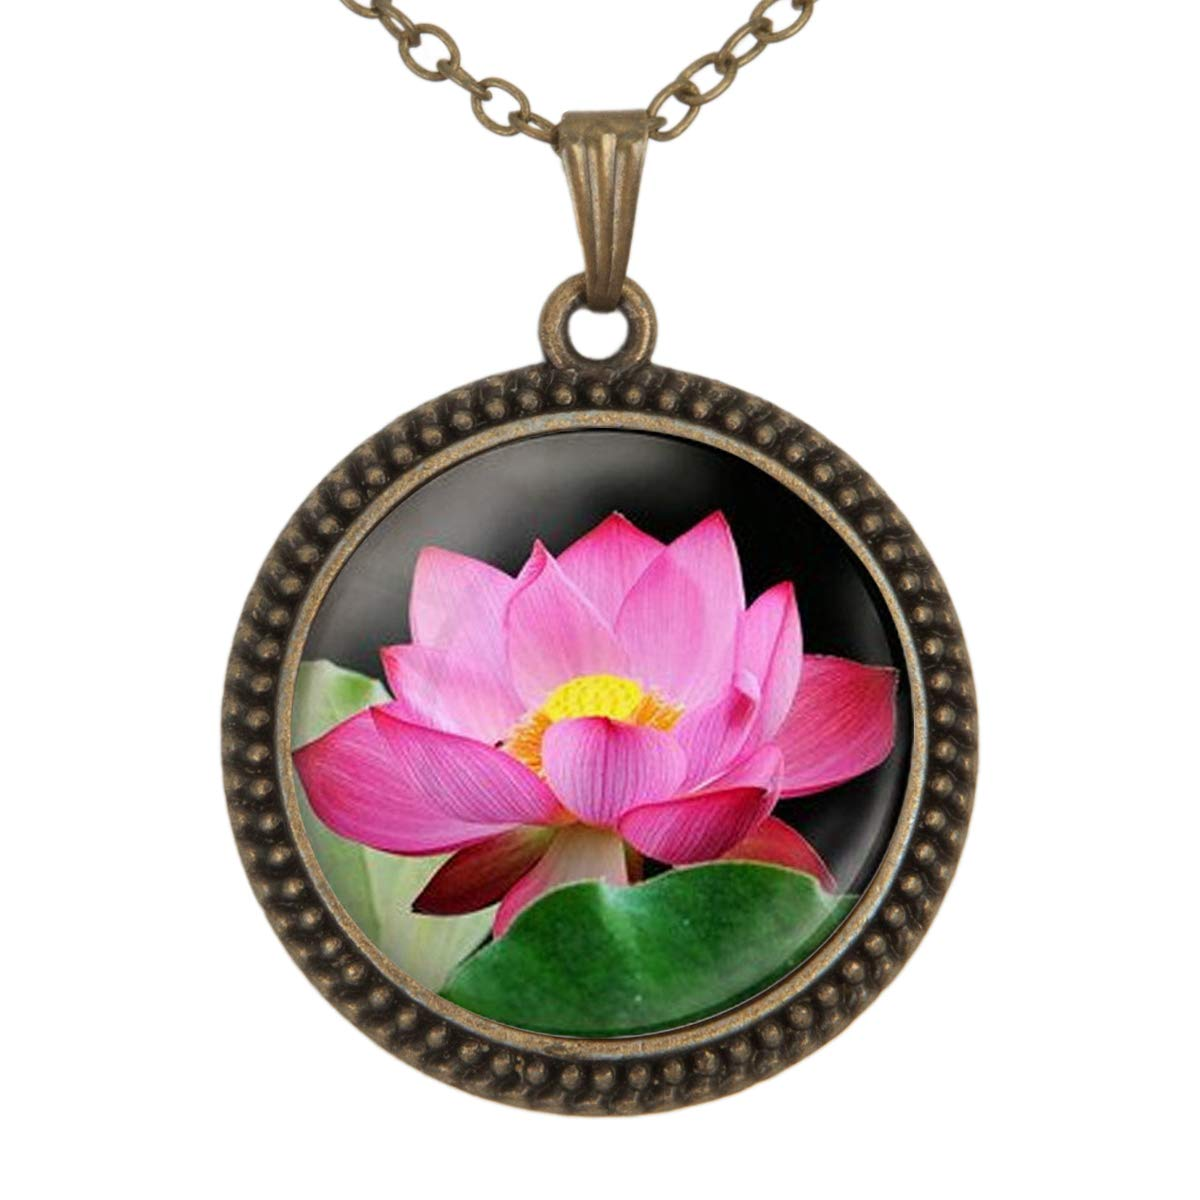 Family Decor Lotus Art Pendant Necklace Cabochon Glass Vintage Bronze Chain Necklace Jewelry Handmade